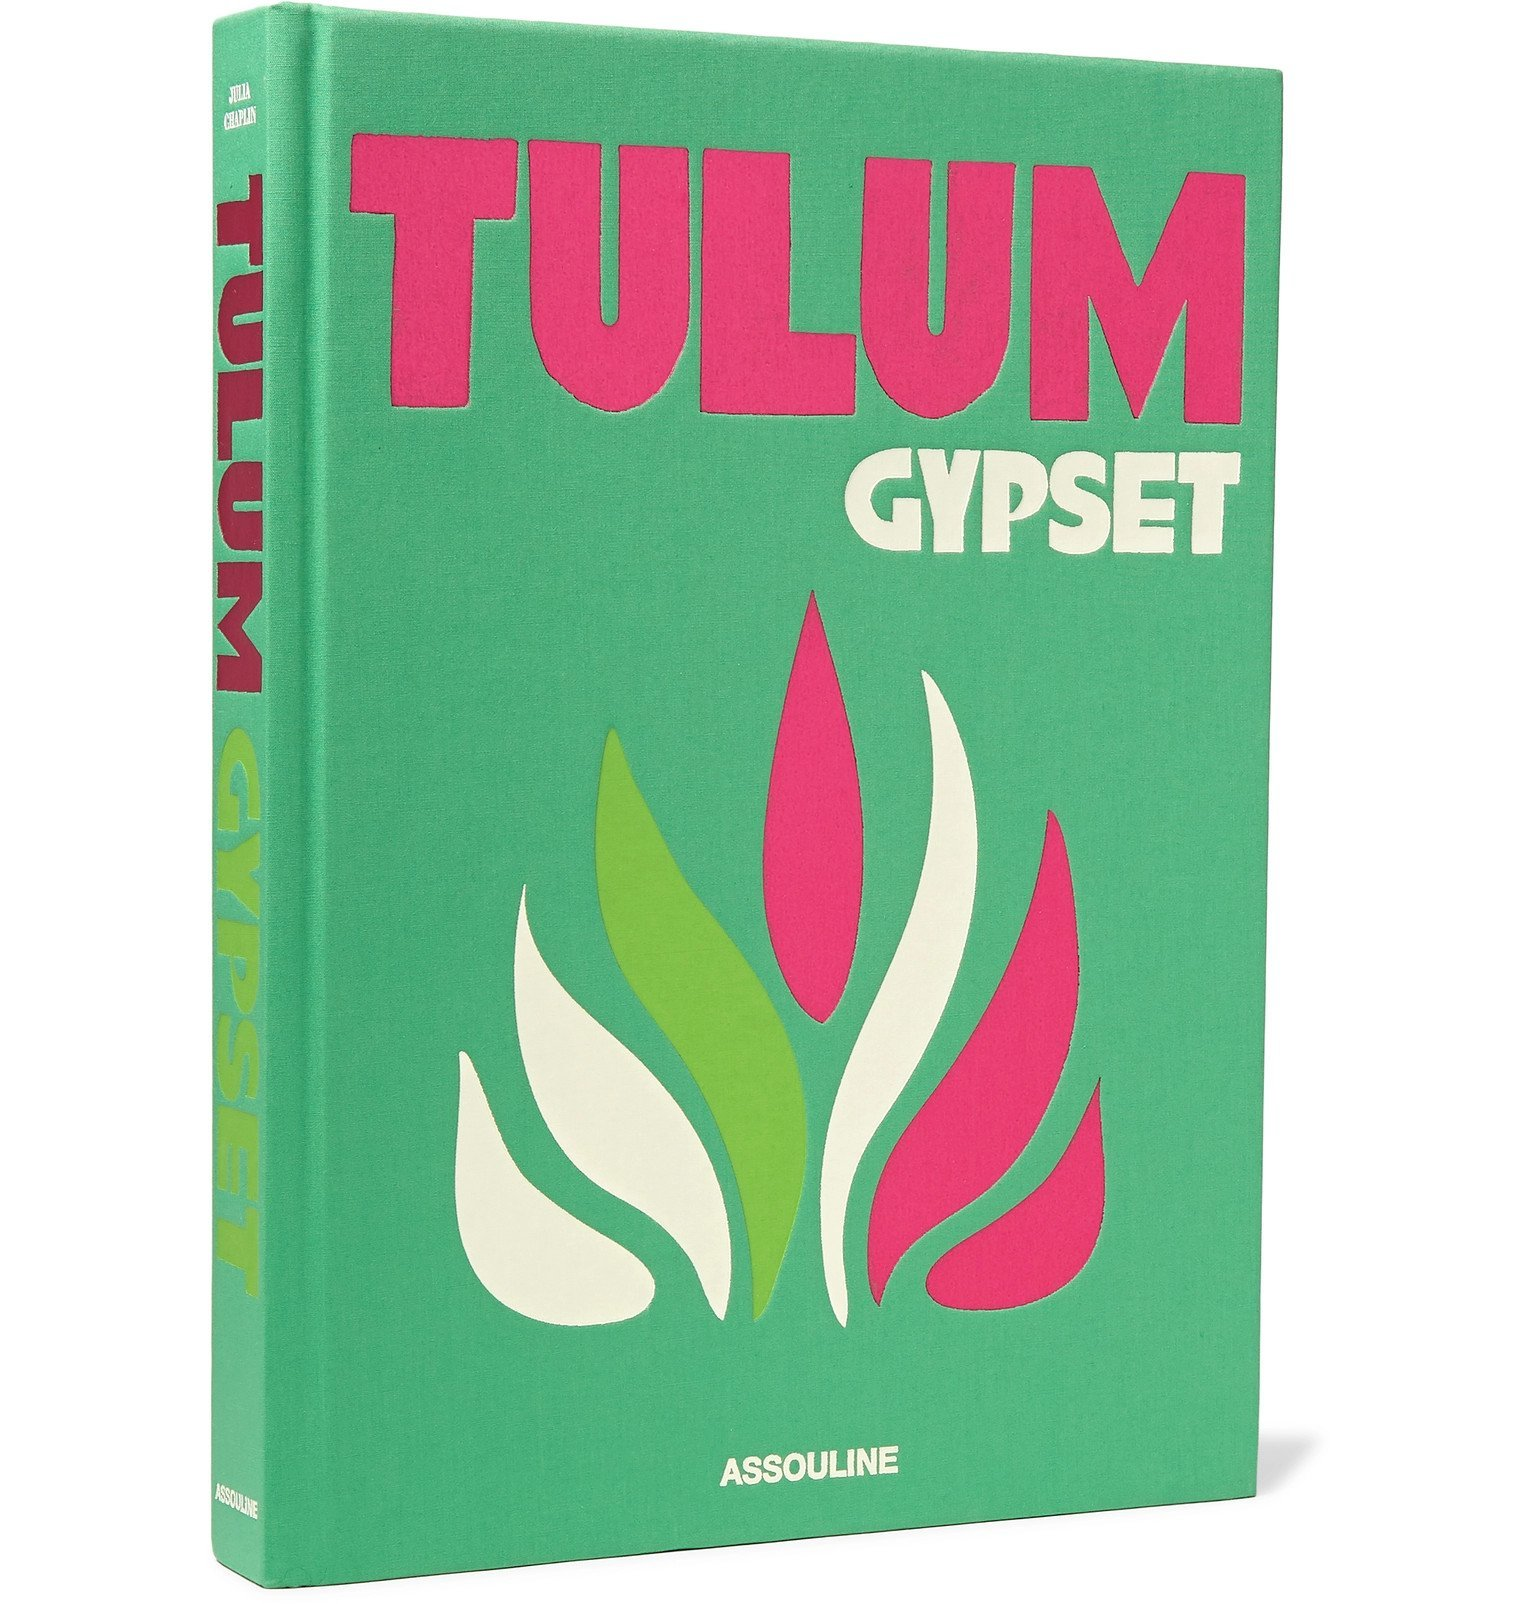 Photo: Assouline - Tulum Gypset Hardcover Book - Green